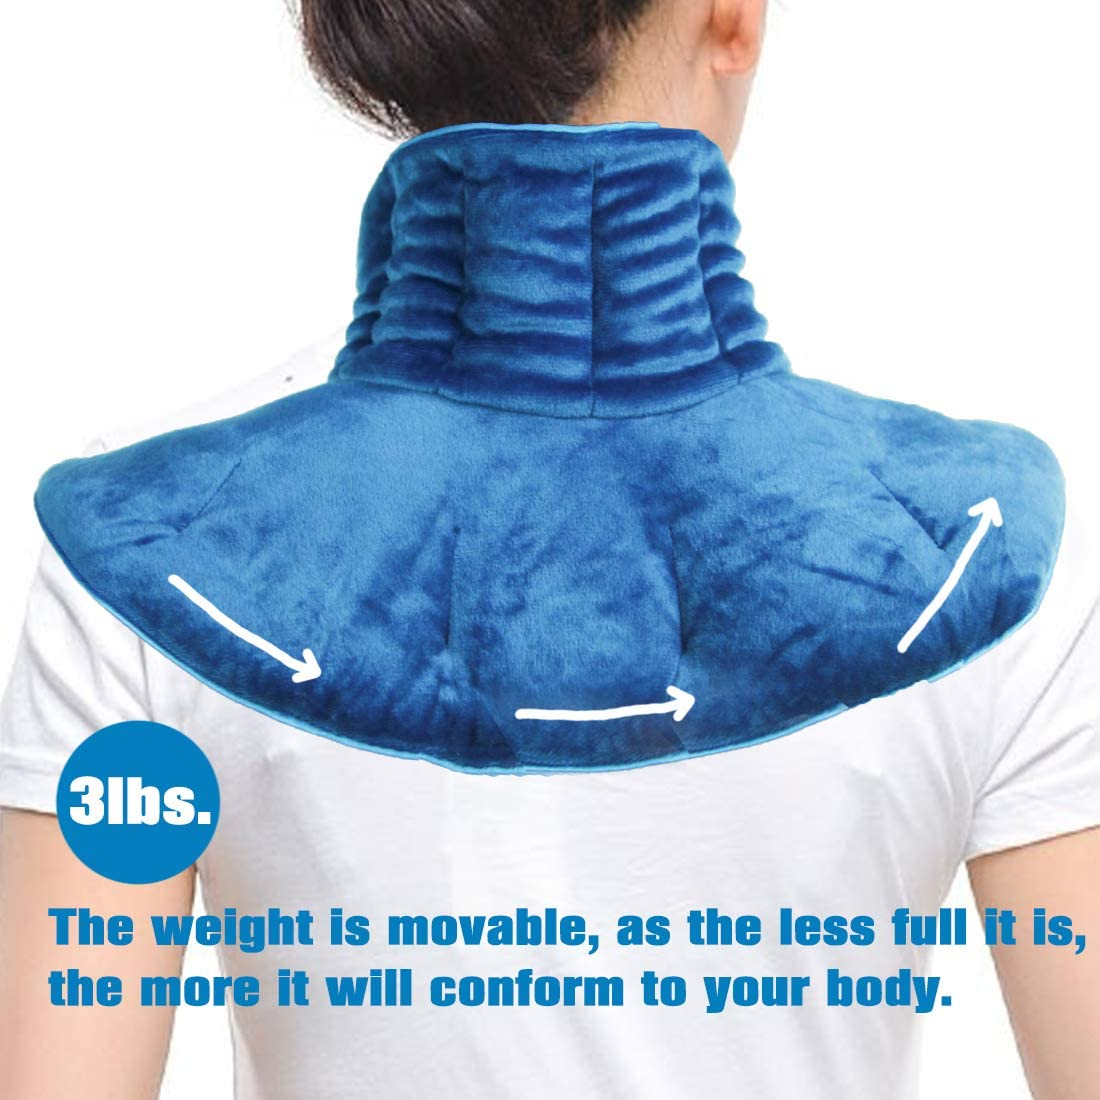 Microwavable Neck Wrap 3lbs Weighted Heating Pad for Neck and Shoulders, Hot & Cold Therapy Soothes Muscle and Arthritis Pain, Stress Relief: Health & Personal Care